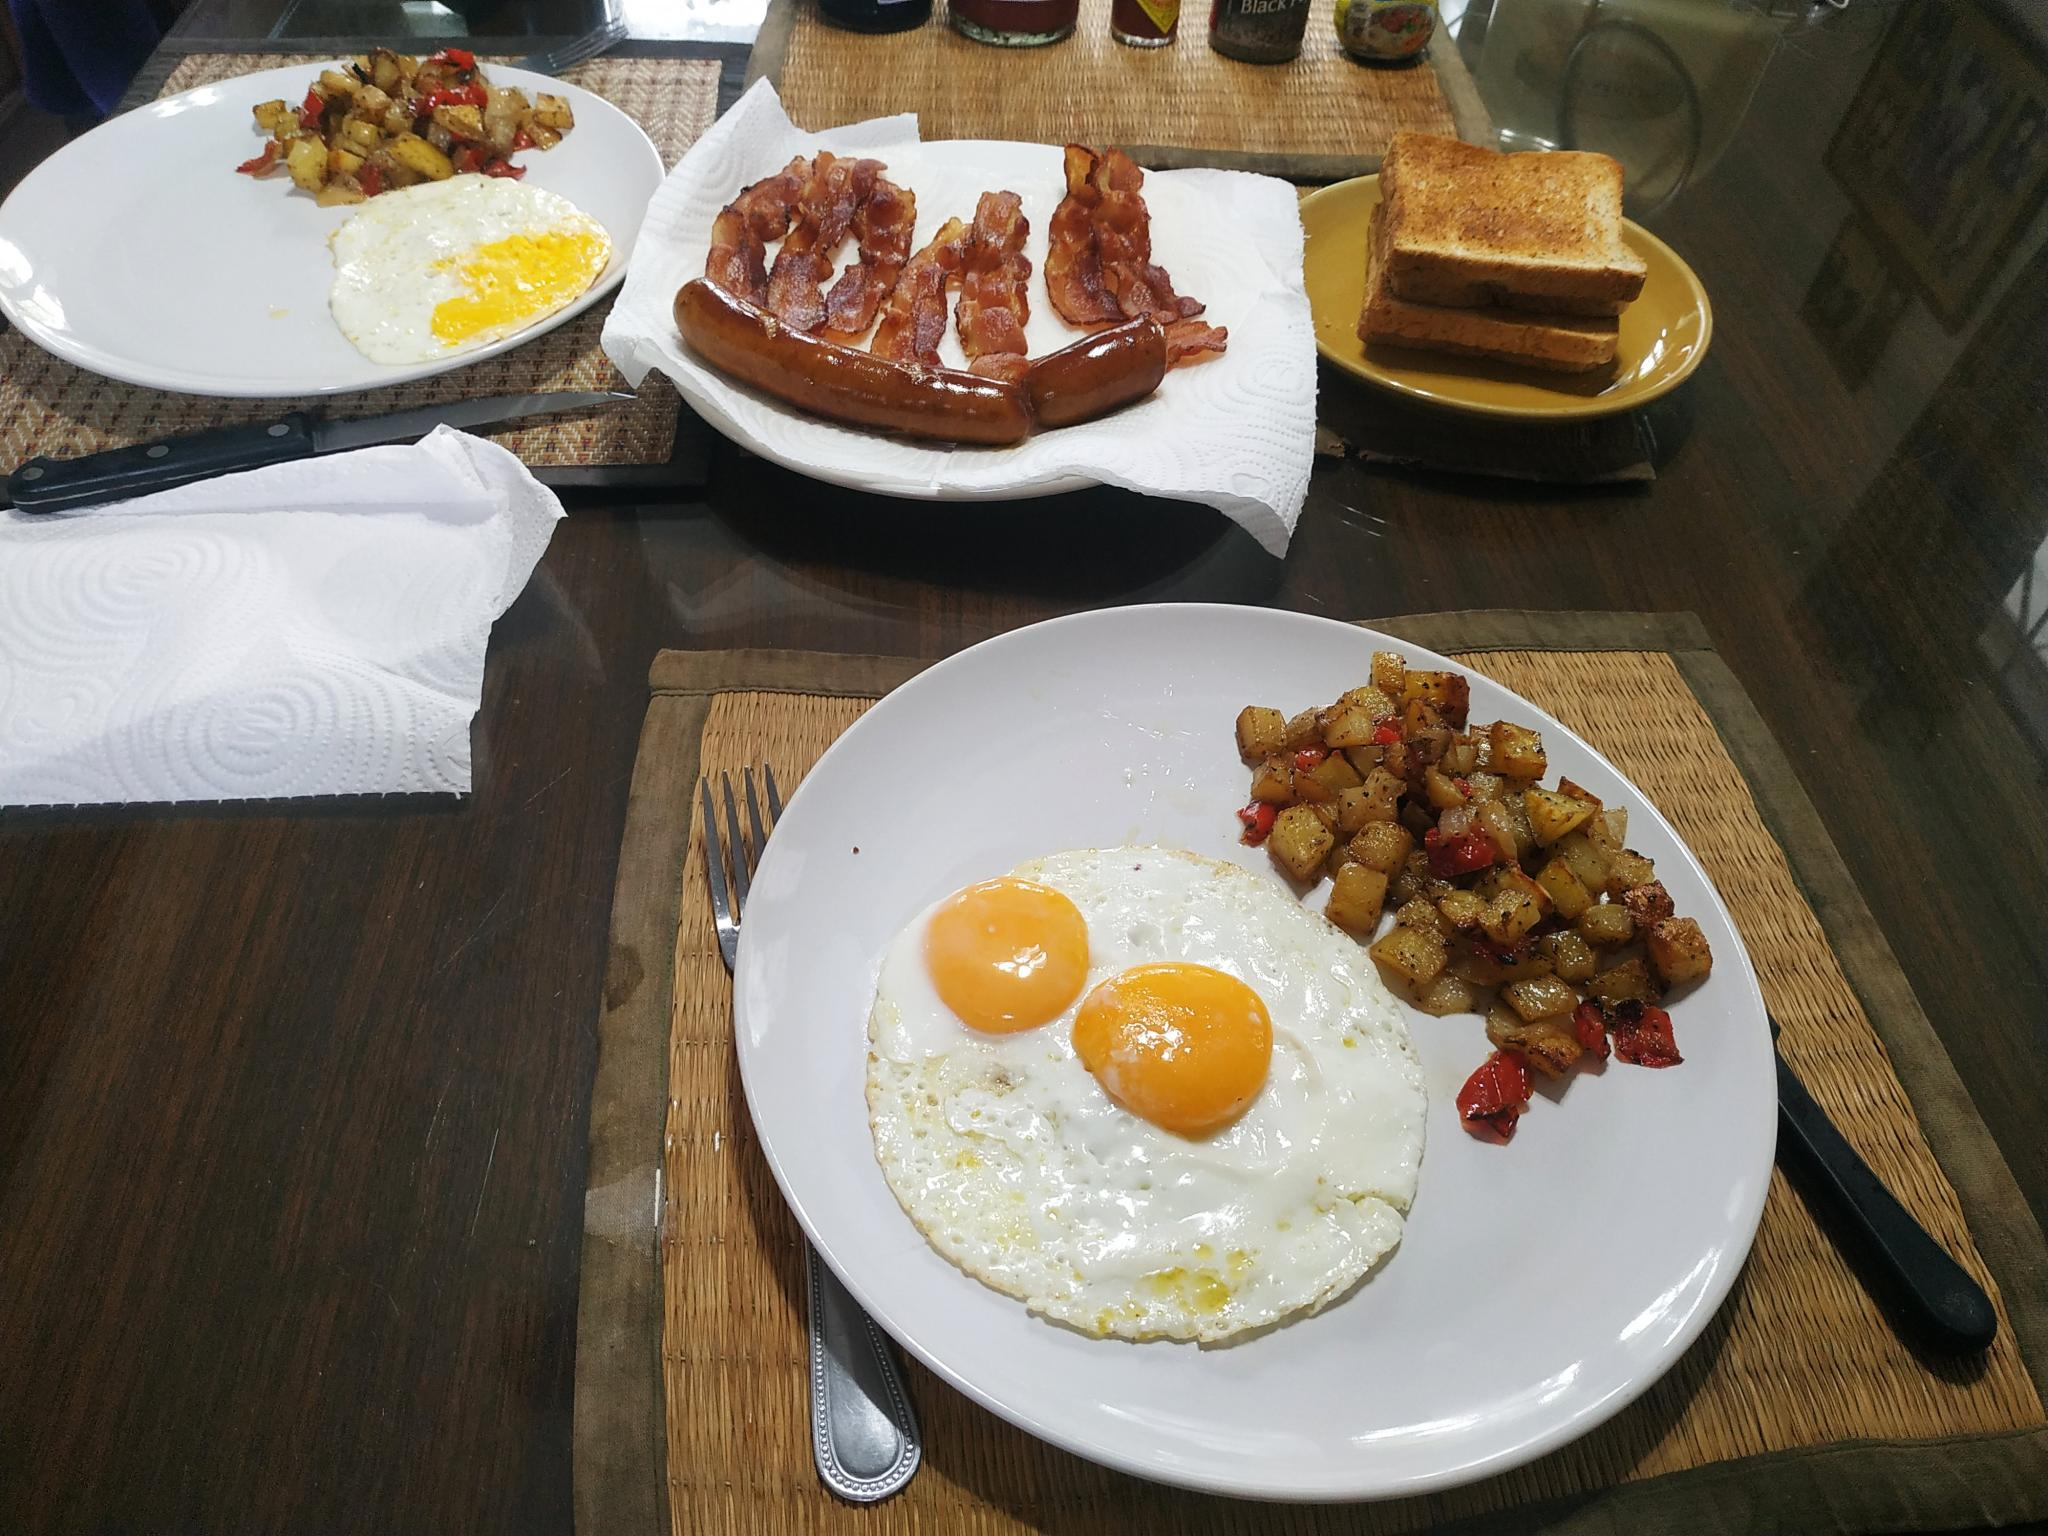 The Best Breakfast in the World Step by Step.: the Full English-img_20210502_094459-jpg